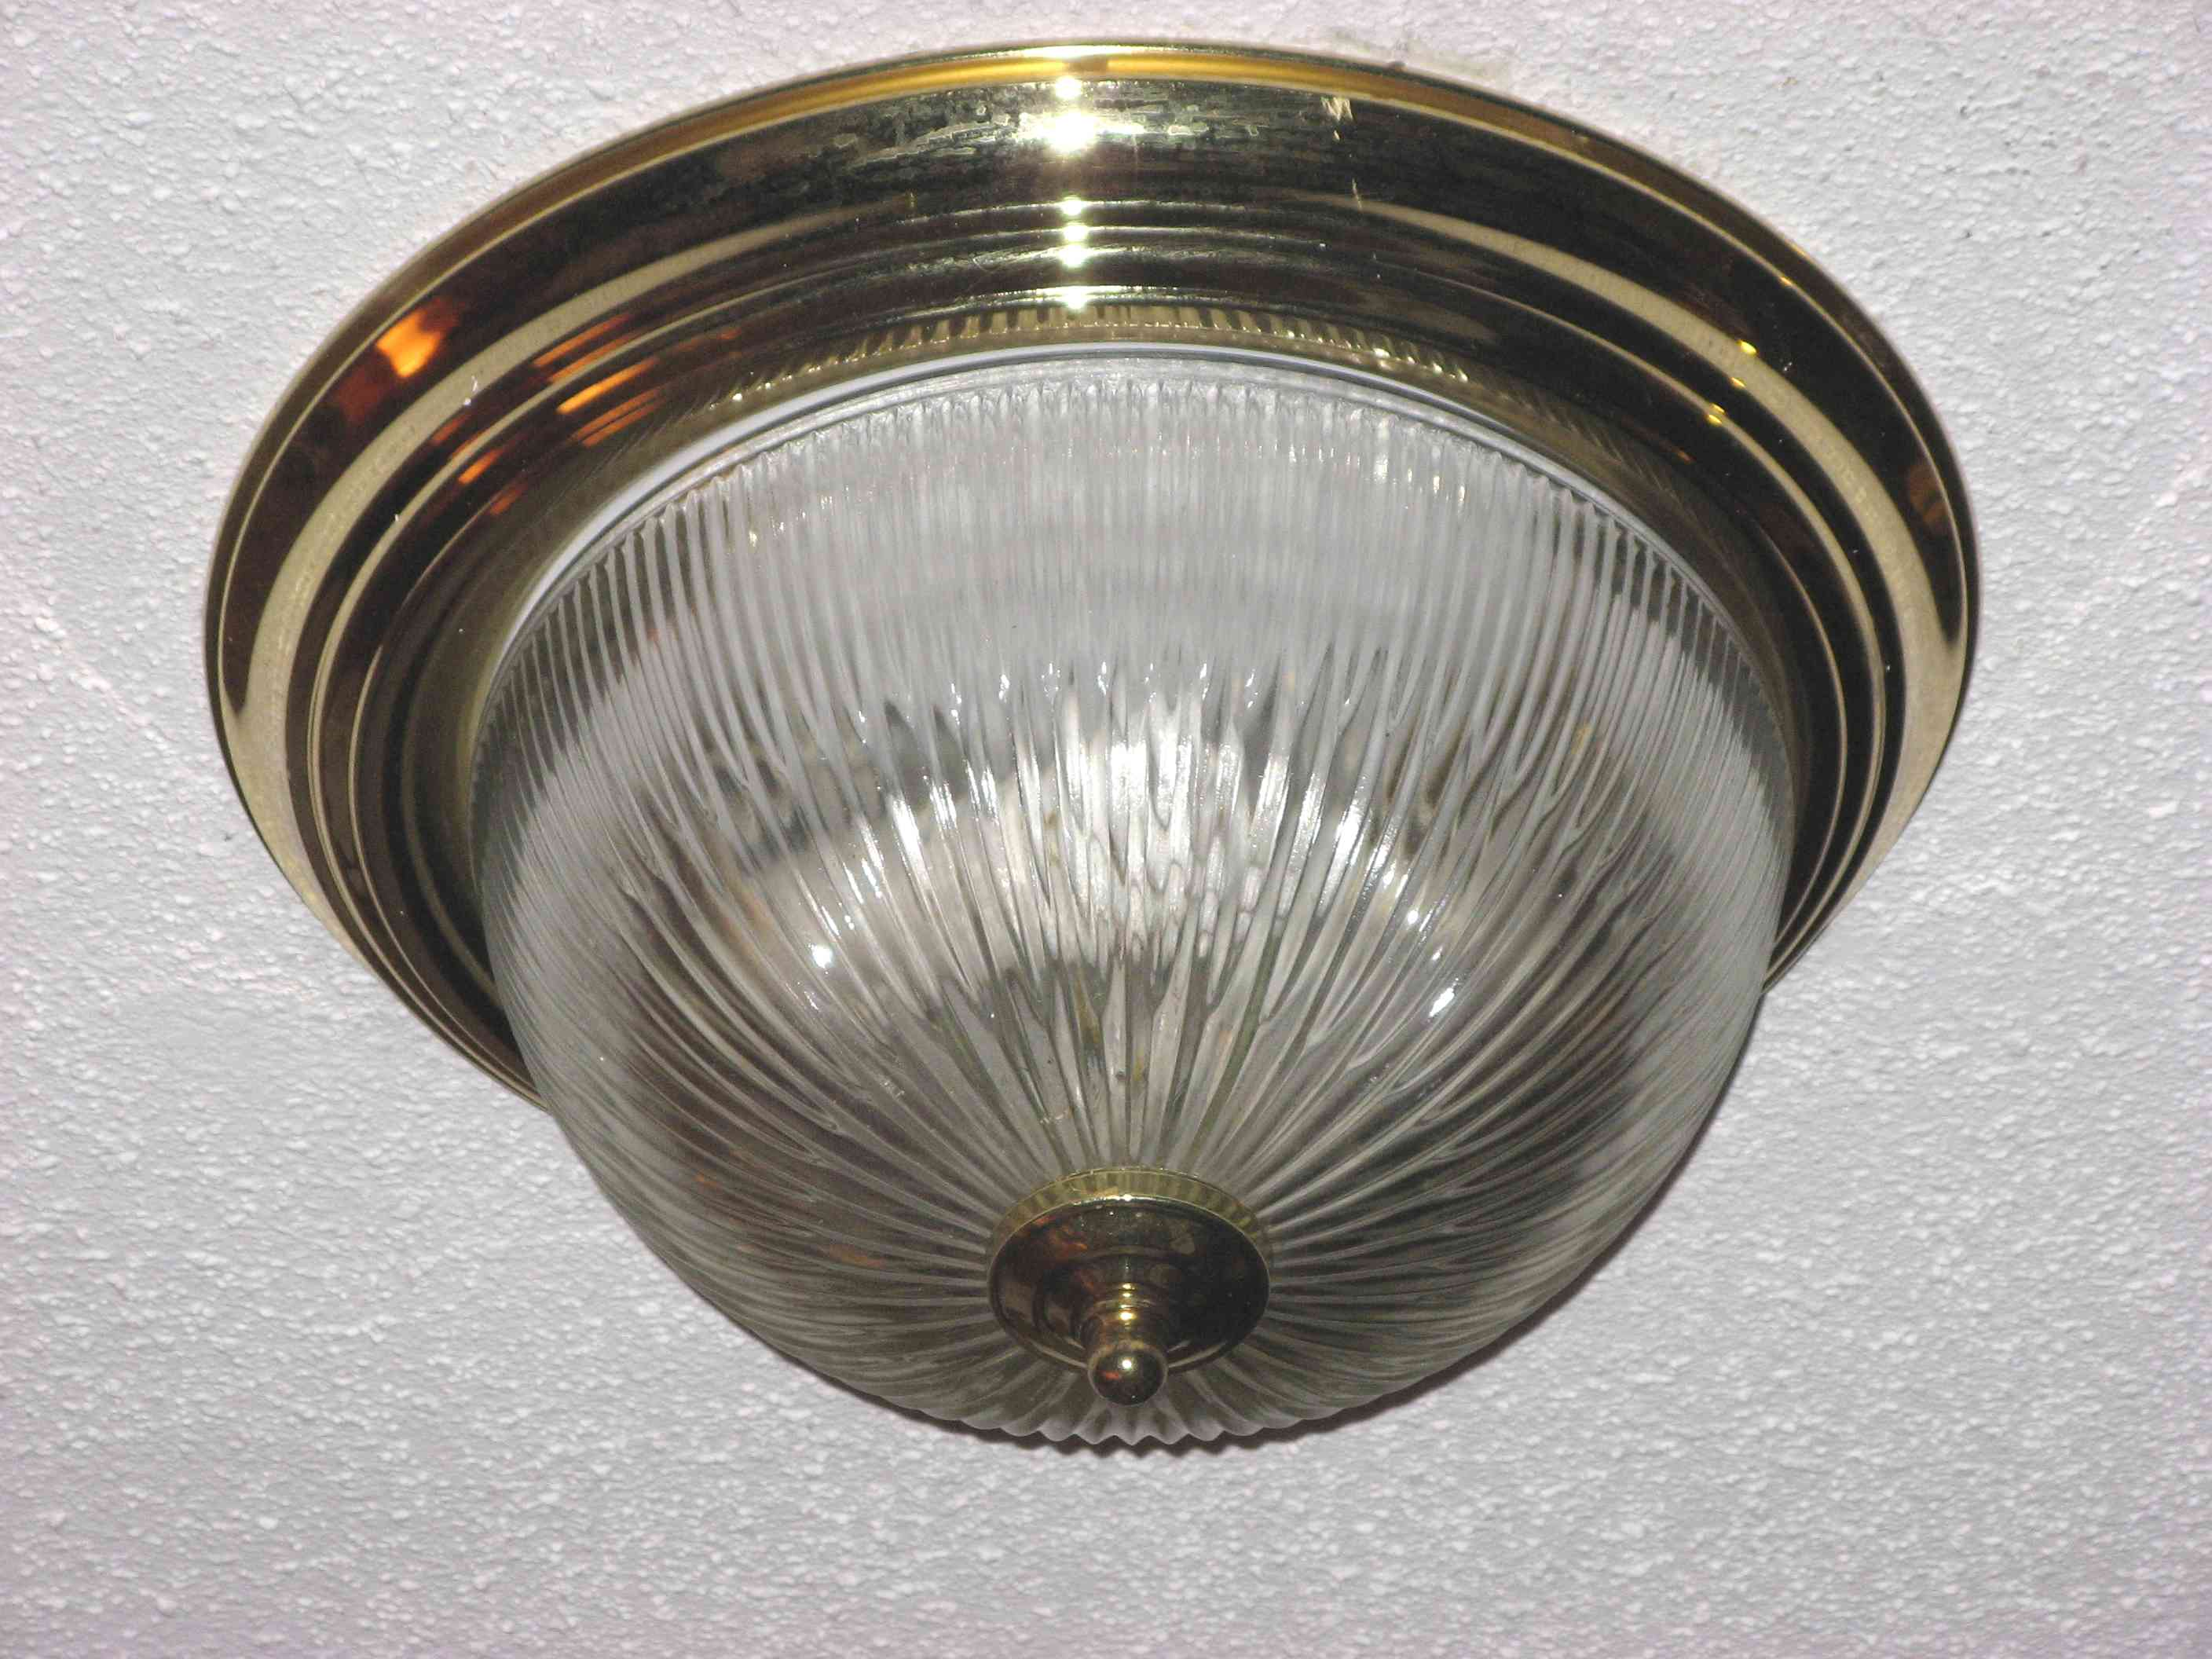 On light fixtures that look like breasts